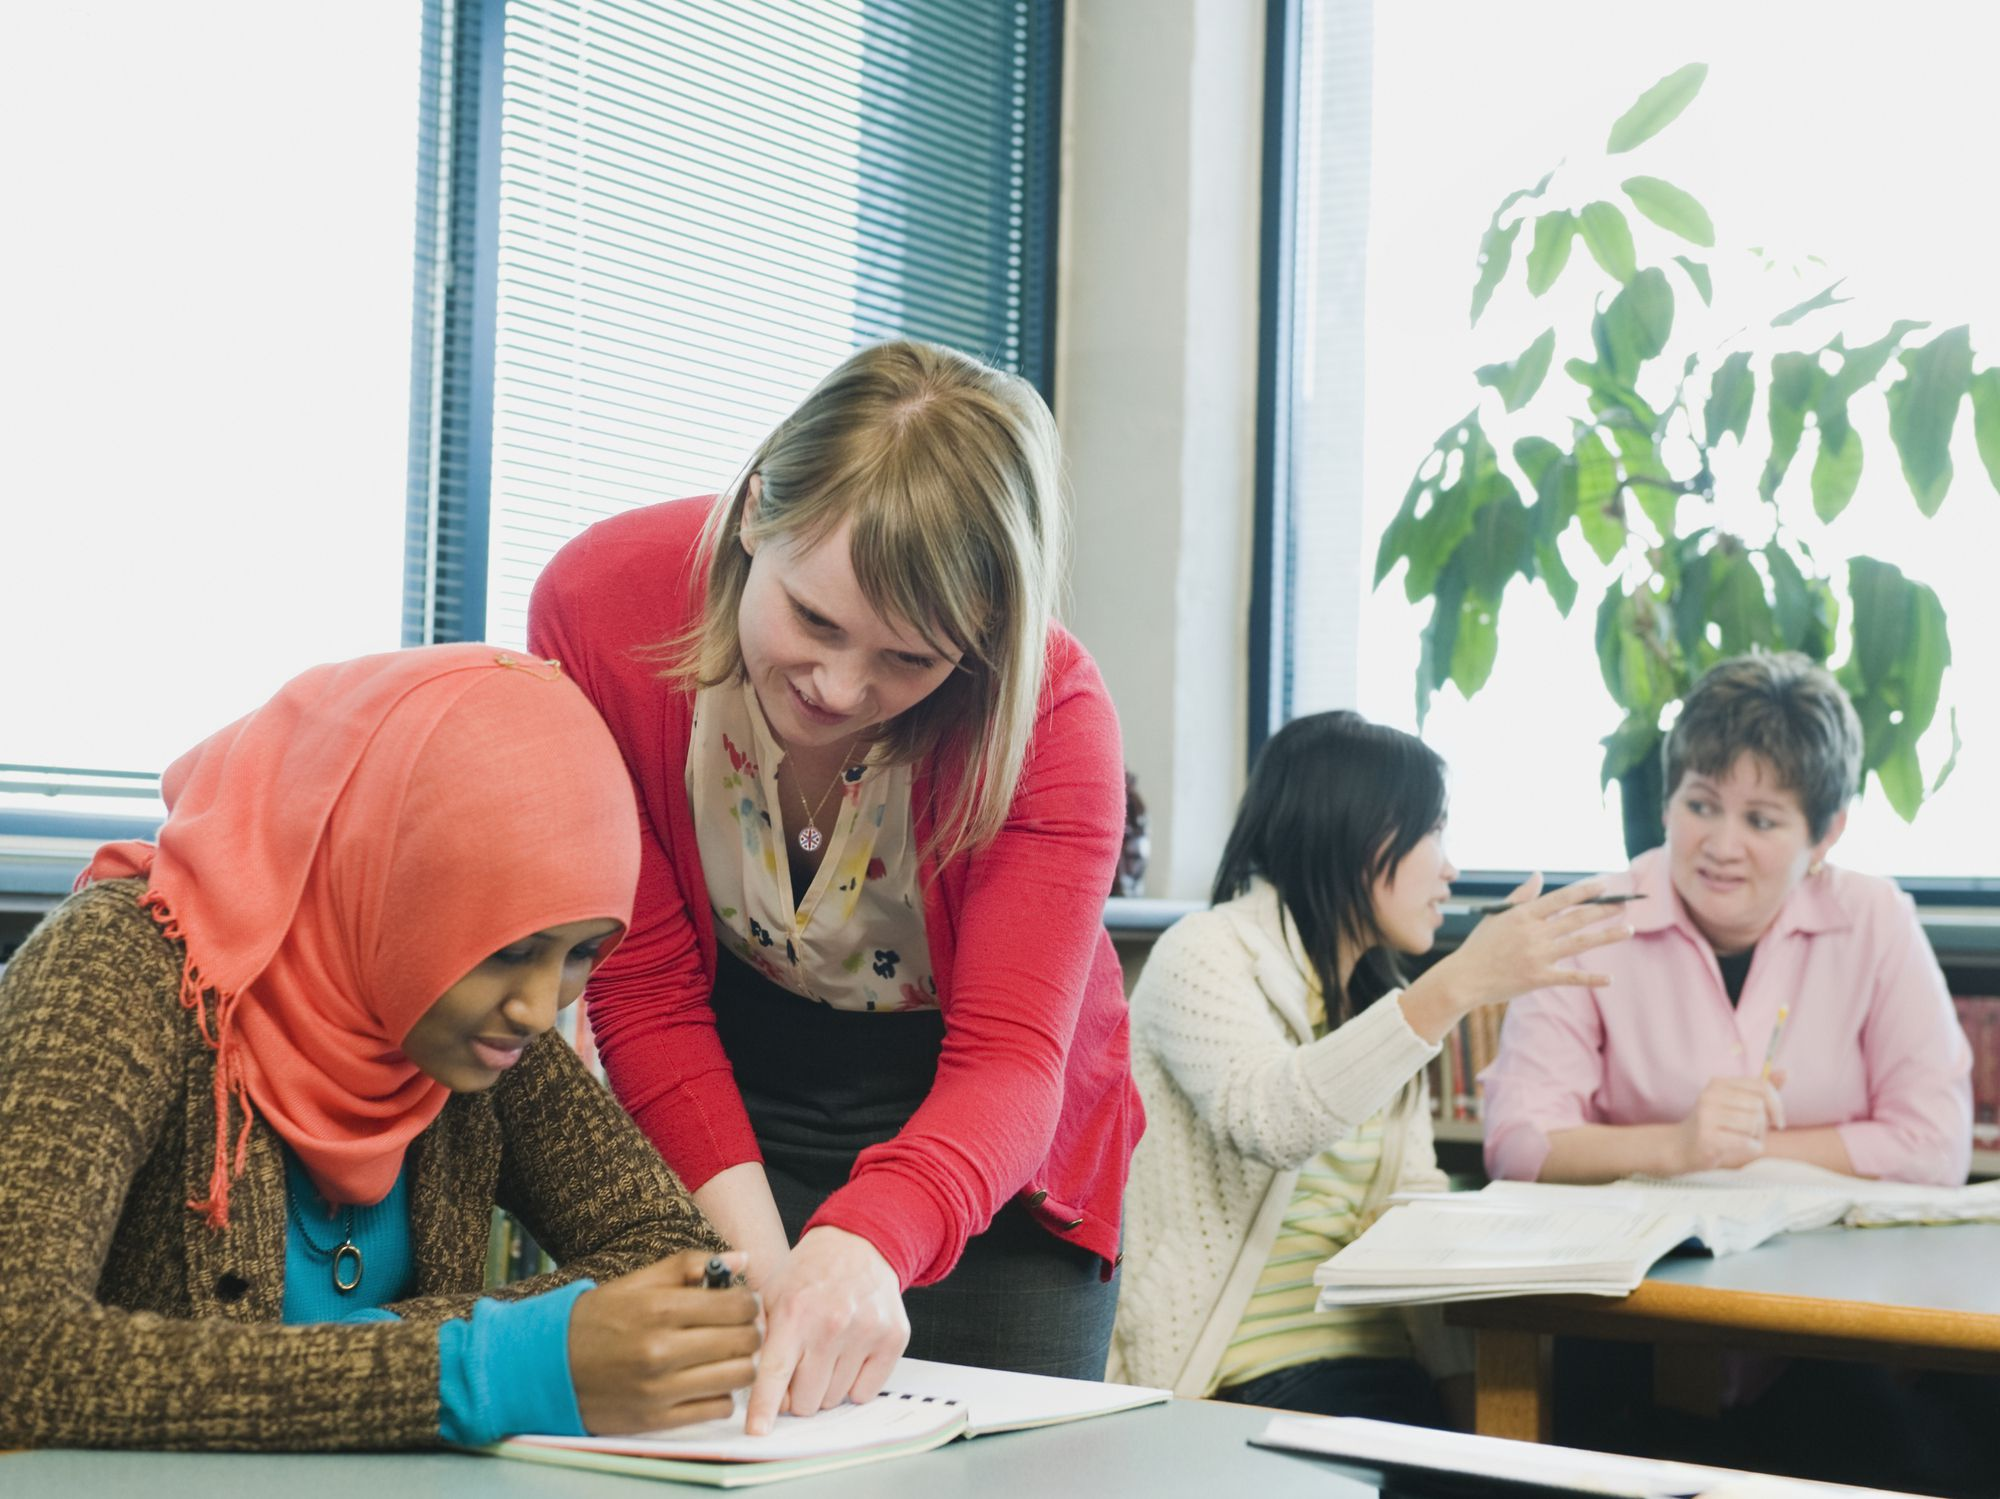 How to Teach English as a Second Language - 10 Valuable Tips